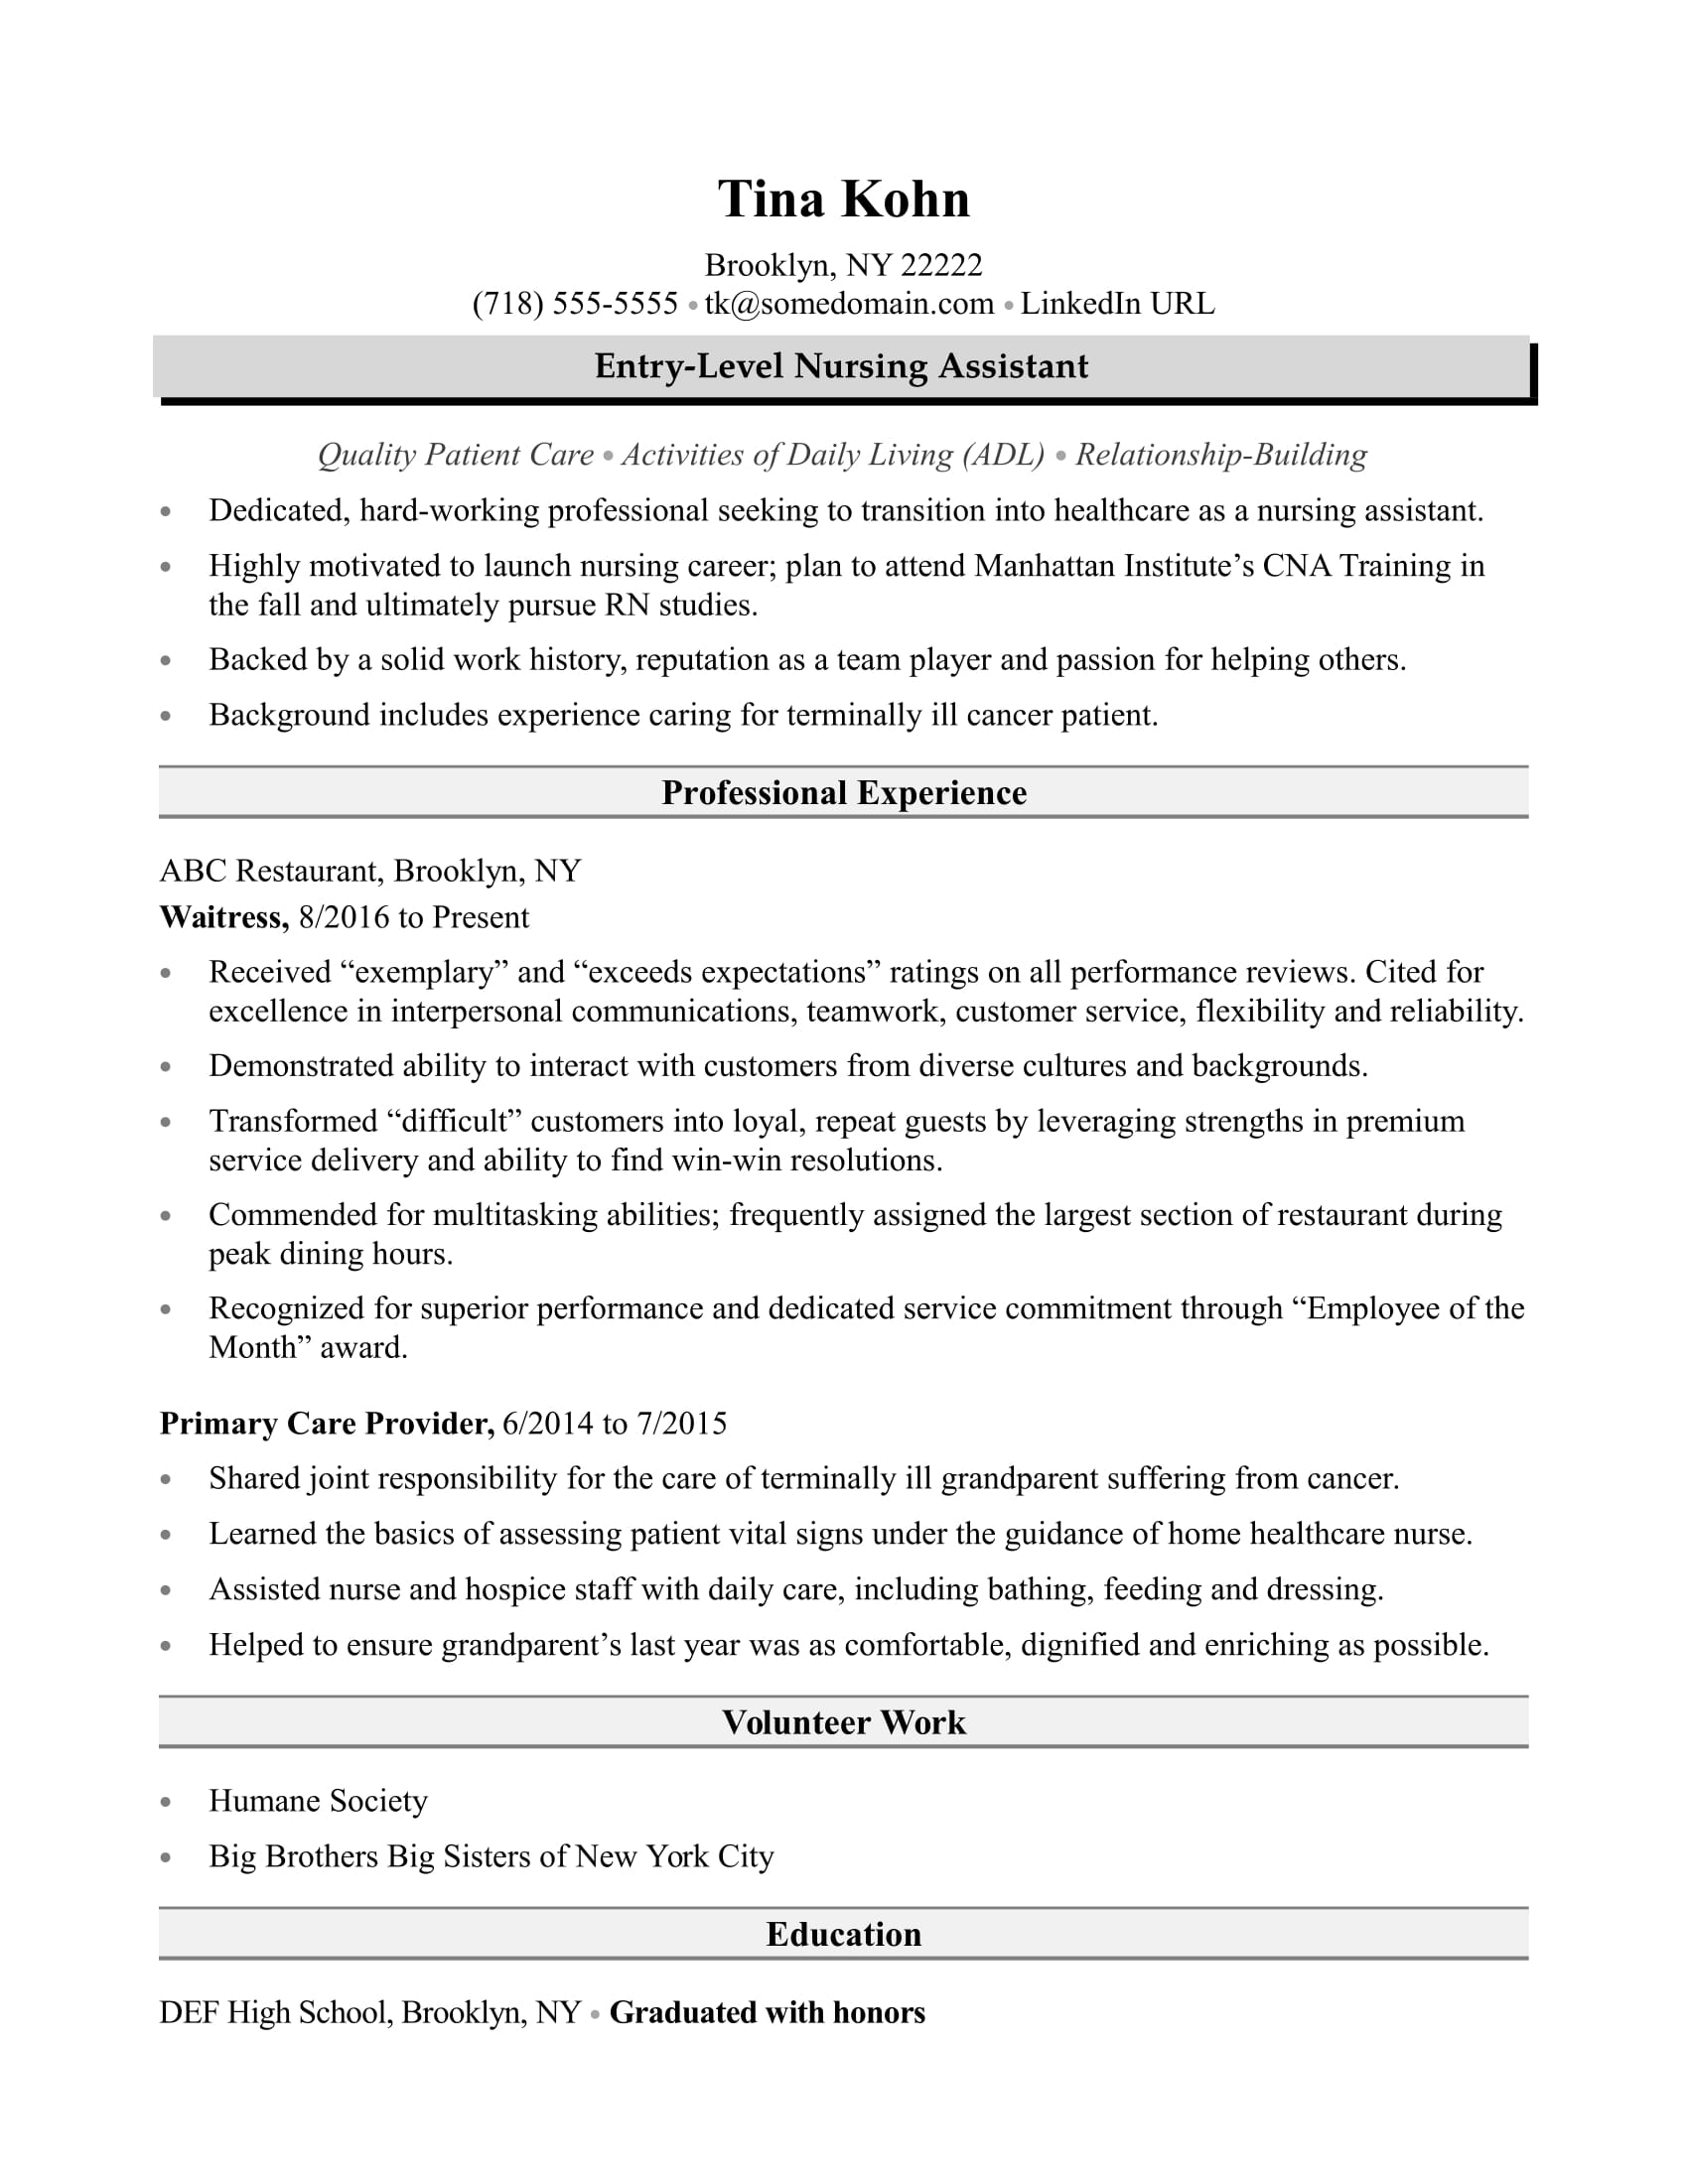 nursing assistant resume sample - Resume Examples Cna